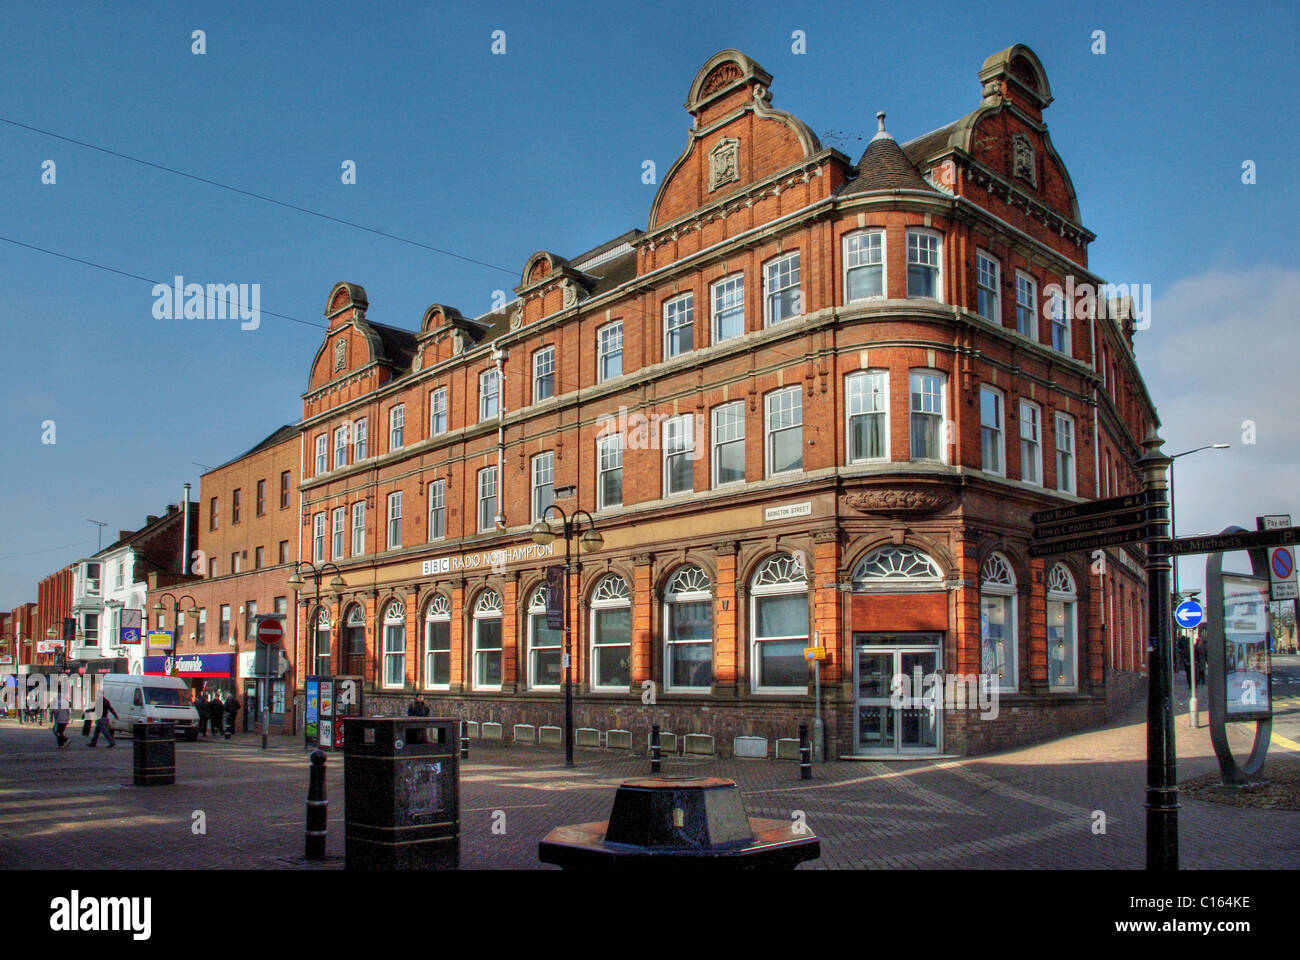 Goodyear Chambers, Northampton, built for the Goodyear Shoe Machinery Company in 1891, now home to BBC Radio Northampton - Stock Image